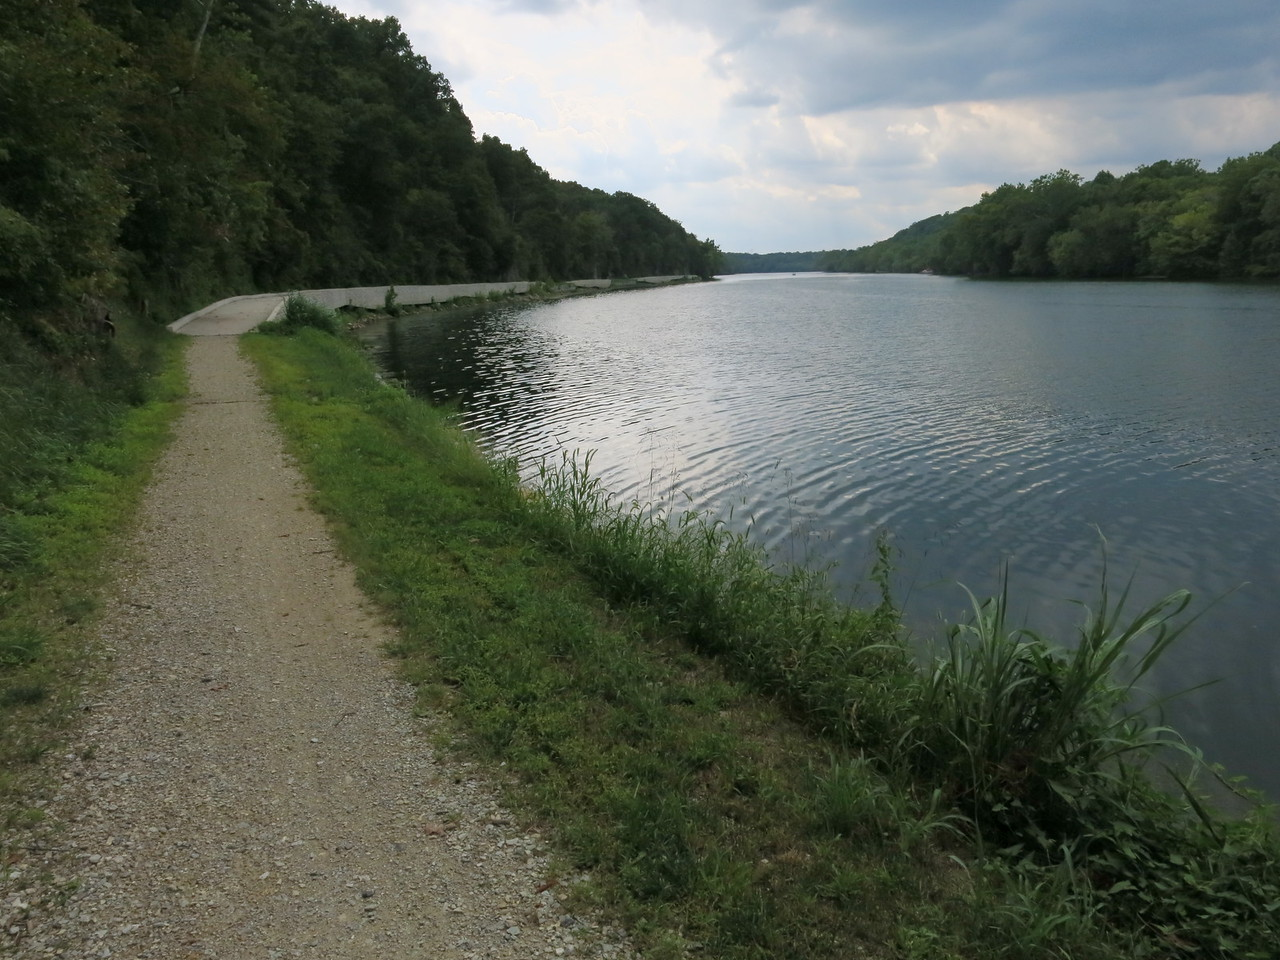 River's edge and towpath in a downstream view of Big Slackwater